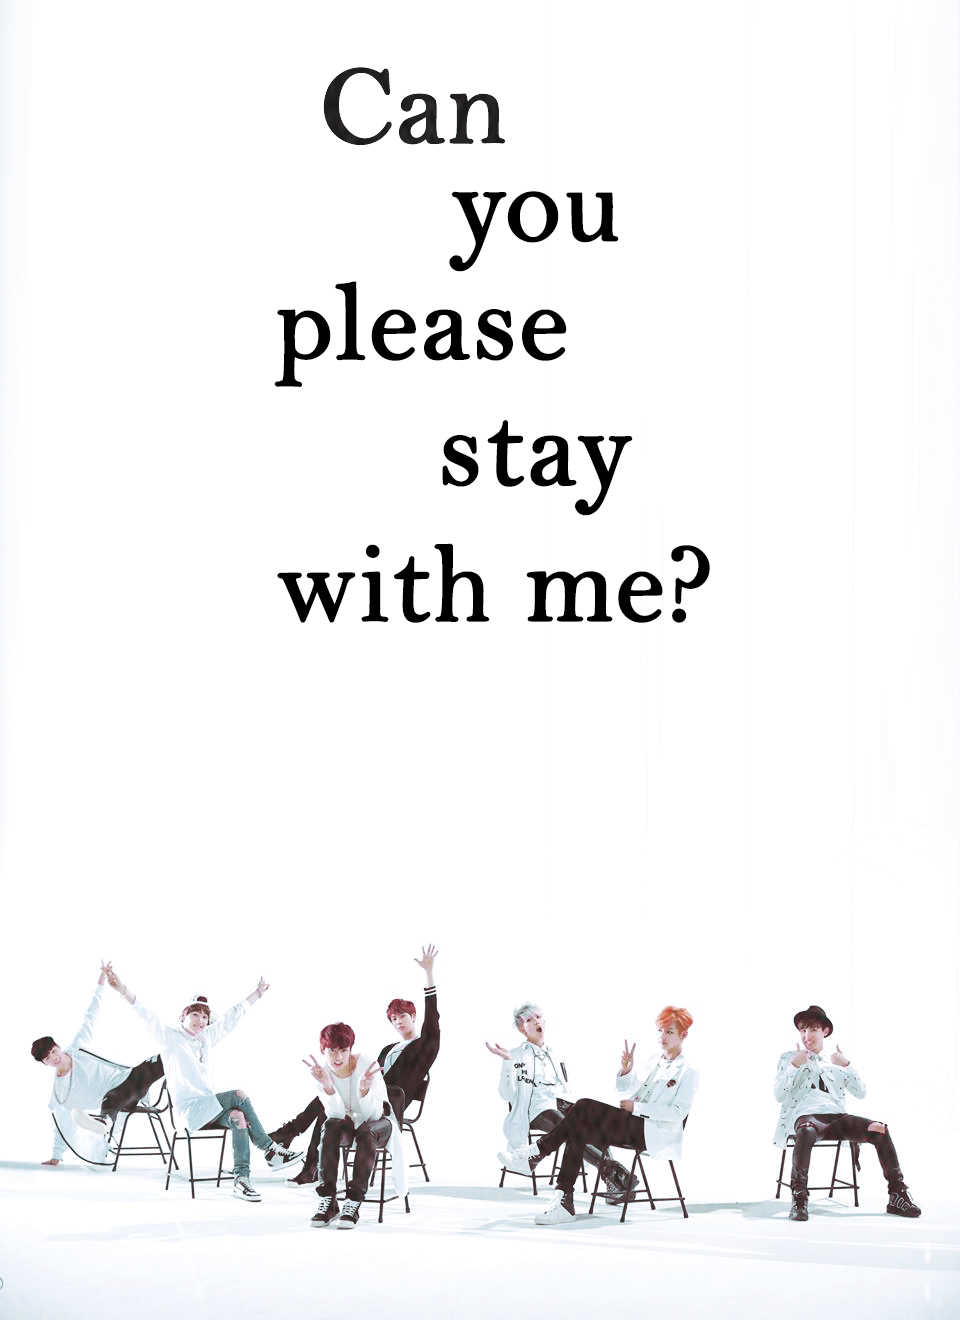 Just One Day Bts Yes Yes I Would Live To Stay With You Bts